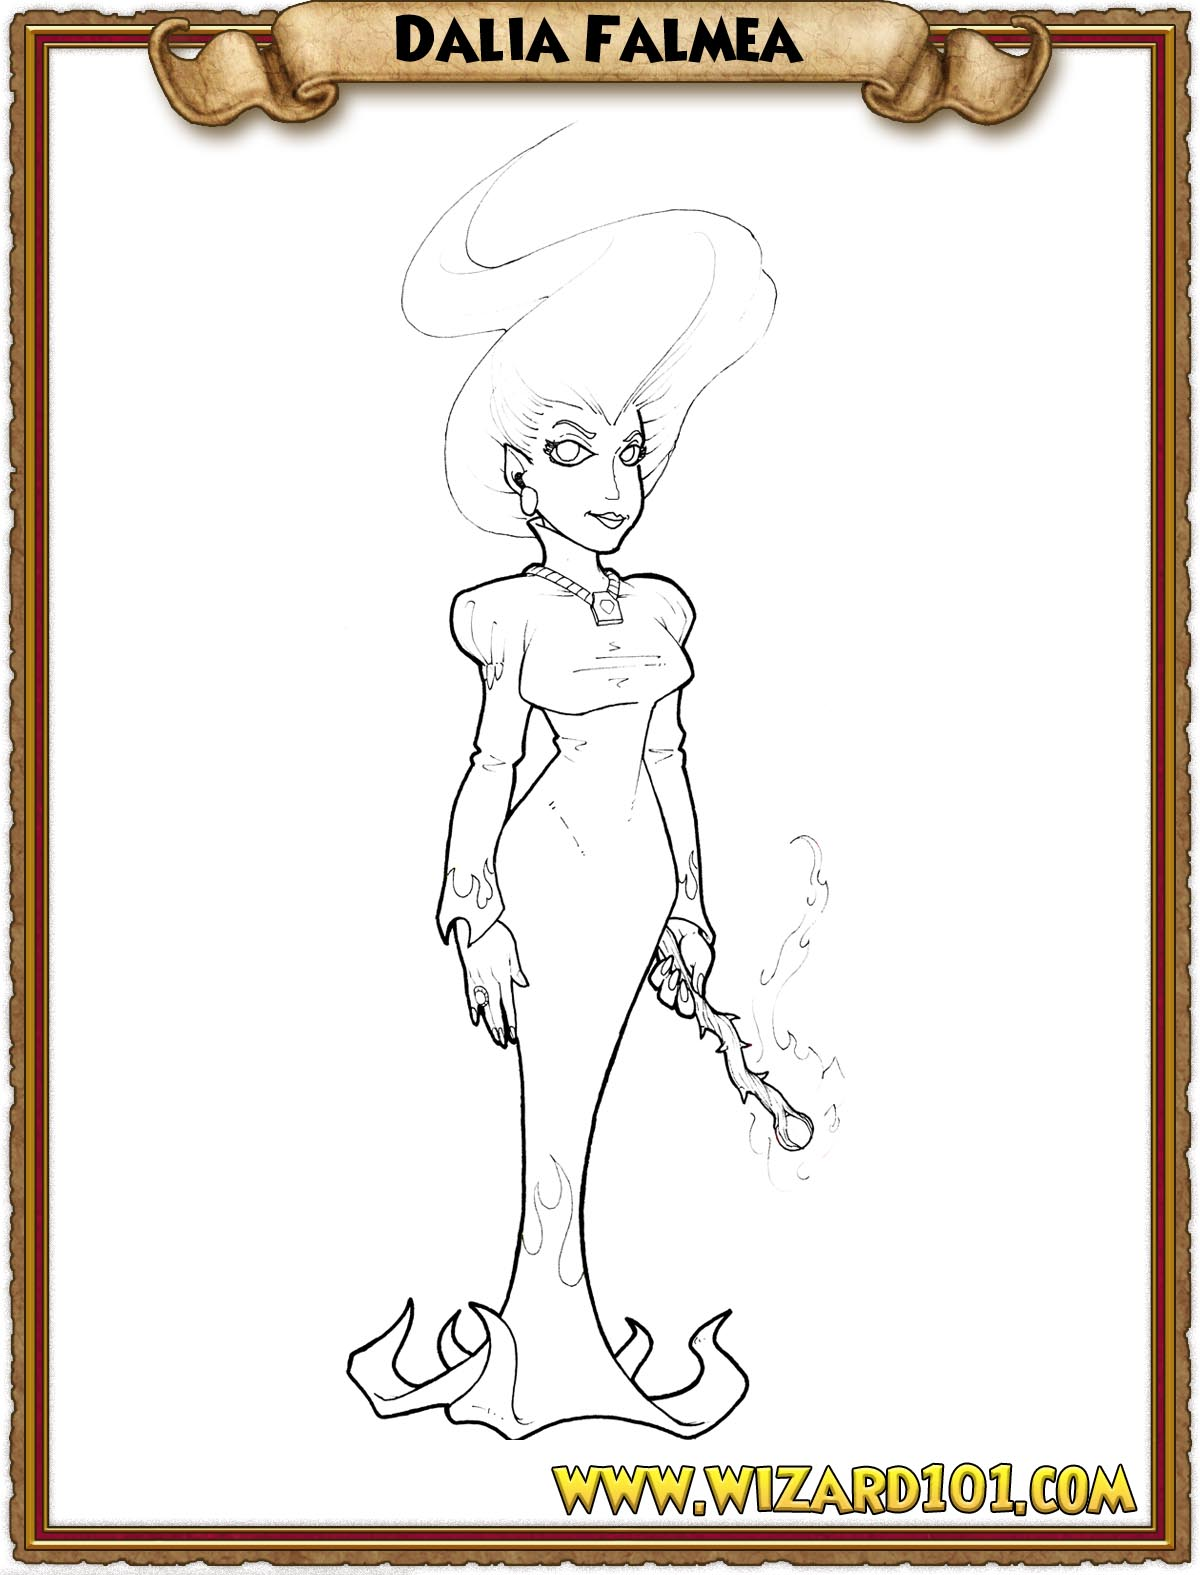 coloring pages wizard101 free online game rh wizard101 com Geisha Kimono Coloring Pages Adult Coloring Pages